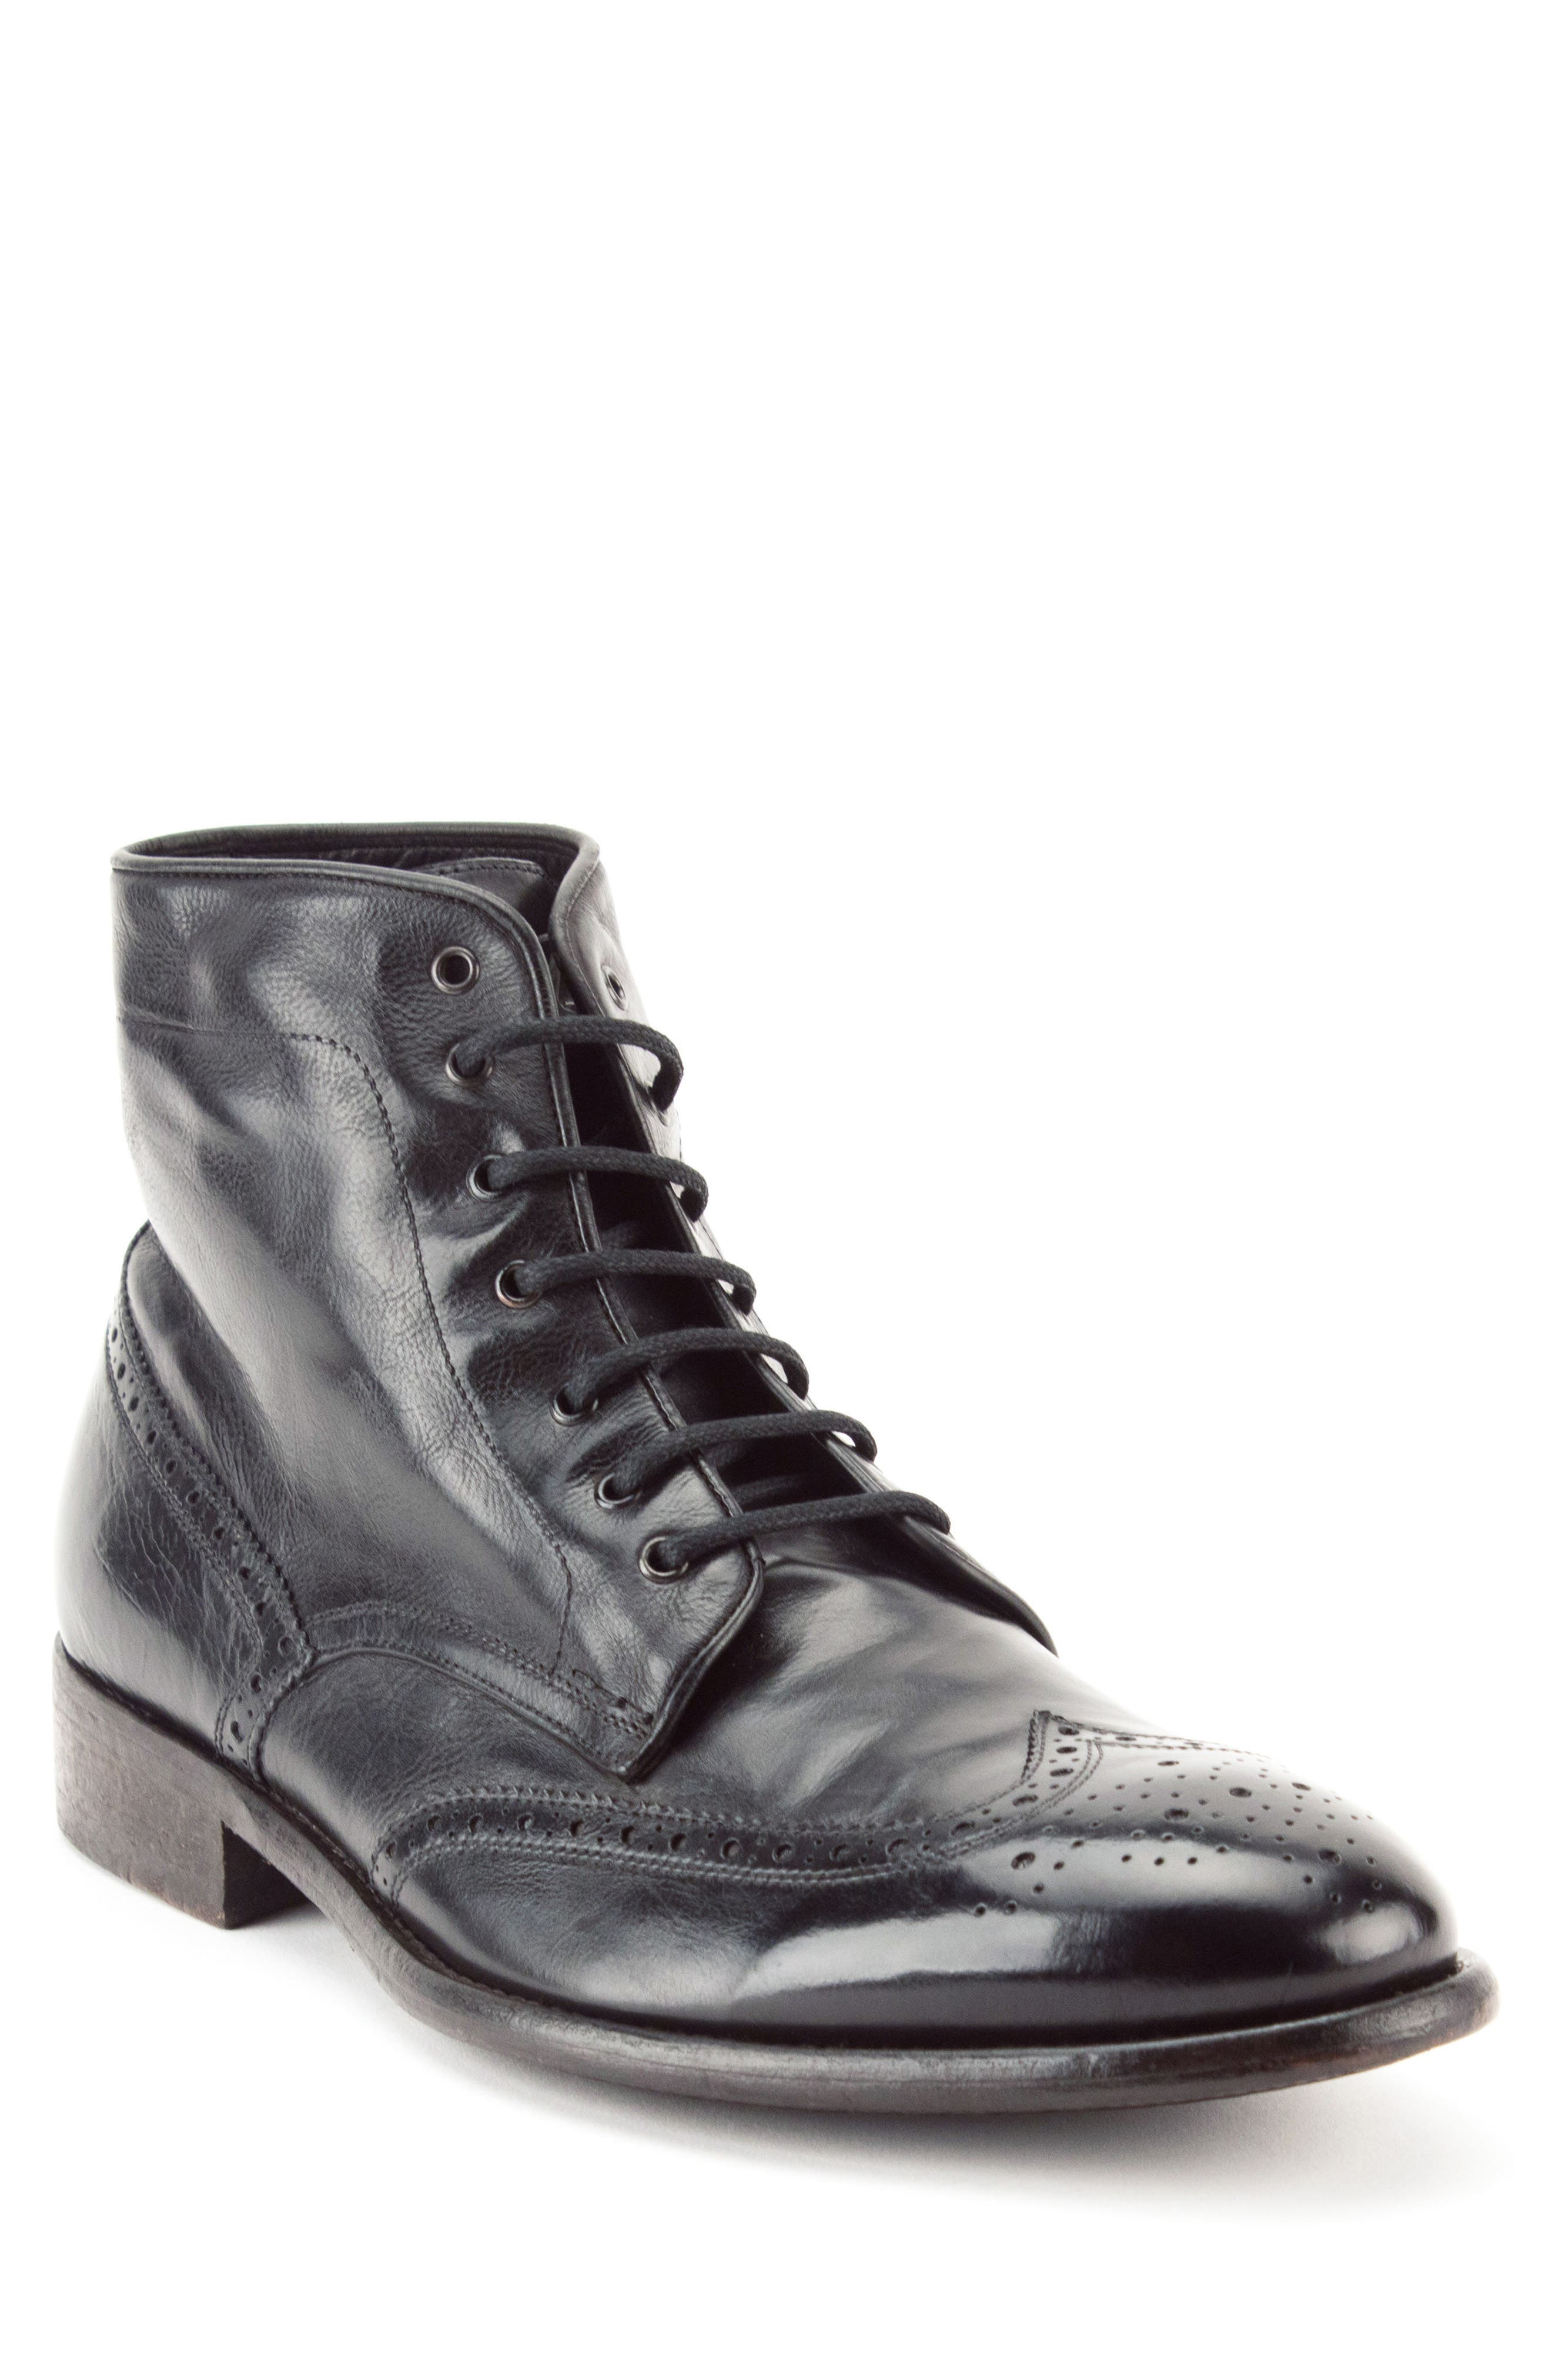 Maxfield Wingtip Boot,                             Main thumbnail 1, color,                             BLACK LEATHER